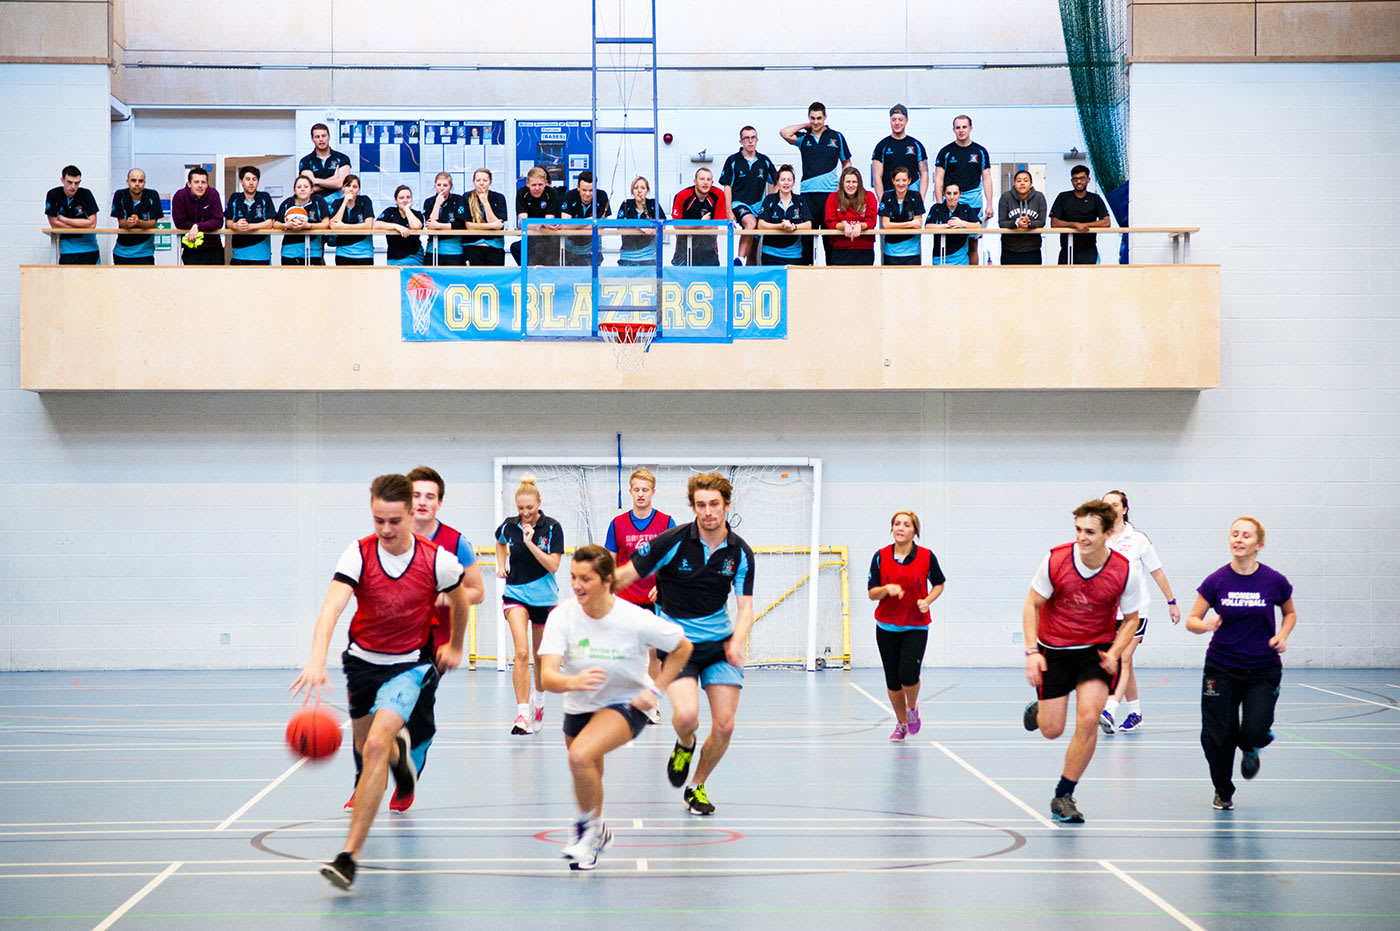 Baskteball game at University of Gloucestershire